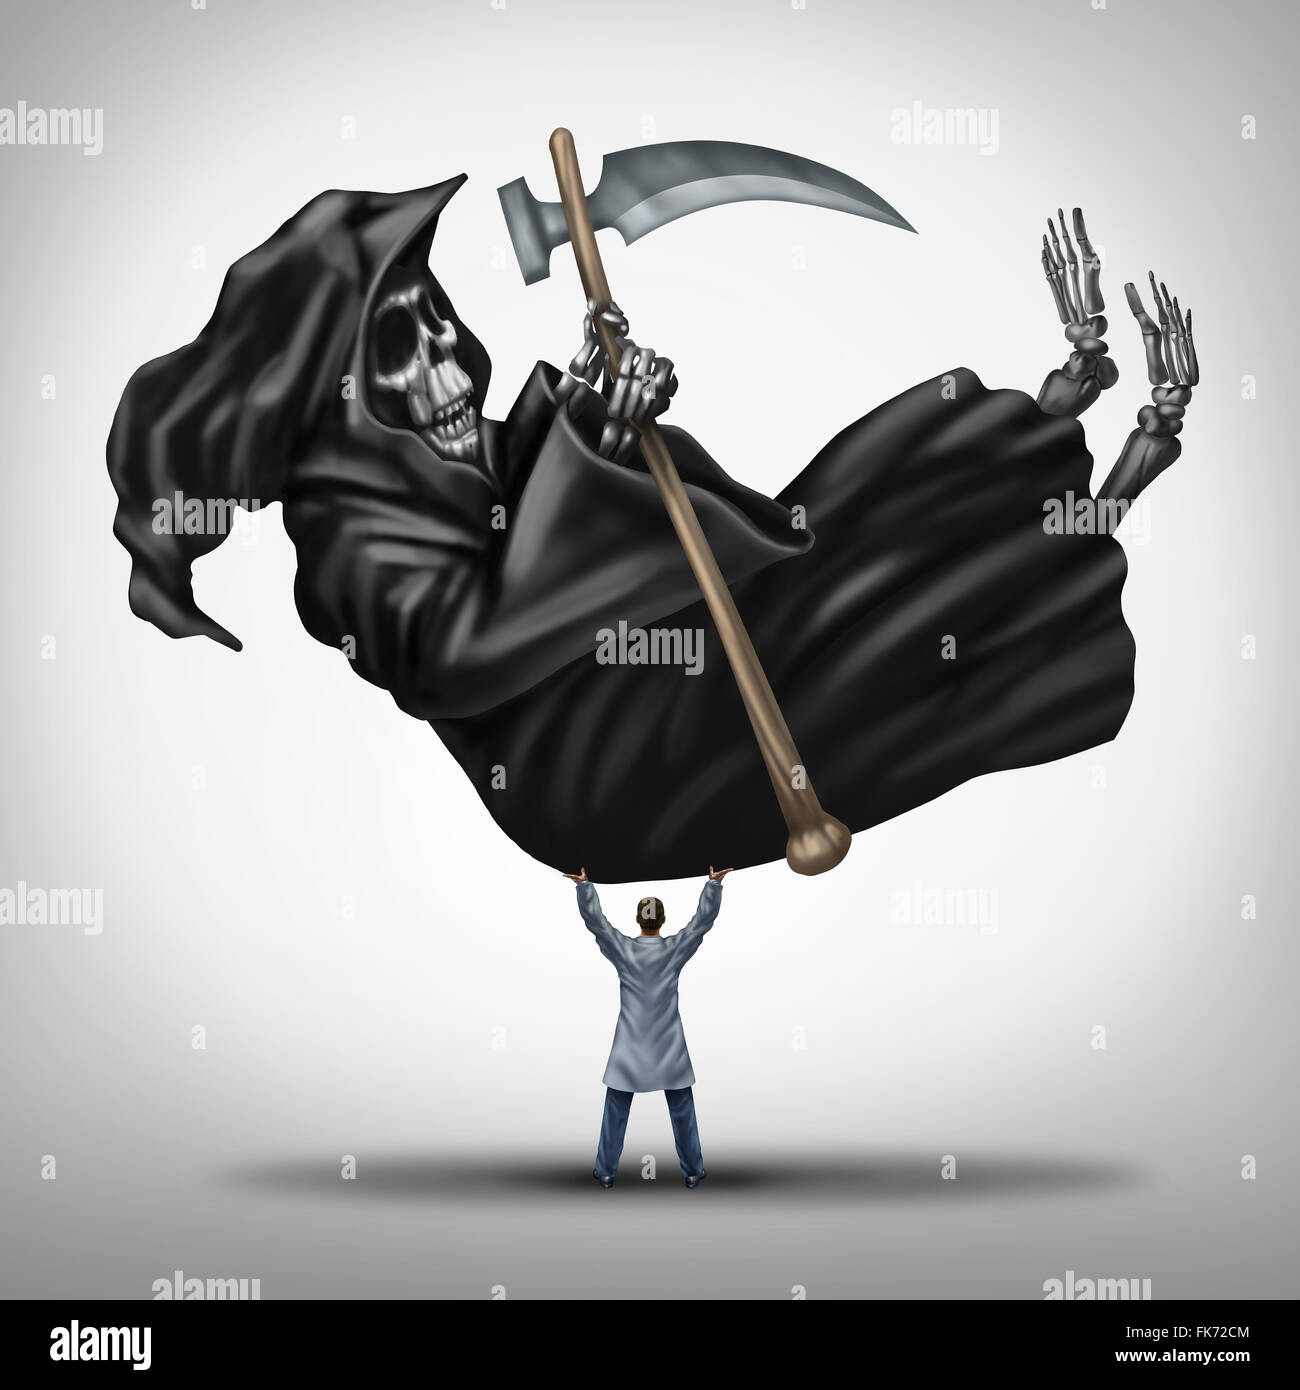 Controlling death and extending life medical concept as a powerful great doctor lifting up and dominating the grim - Stock Image